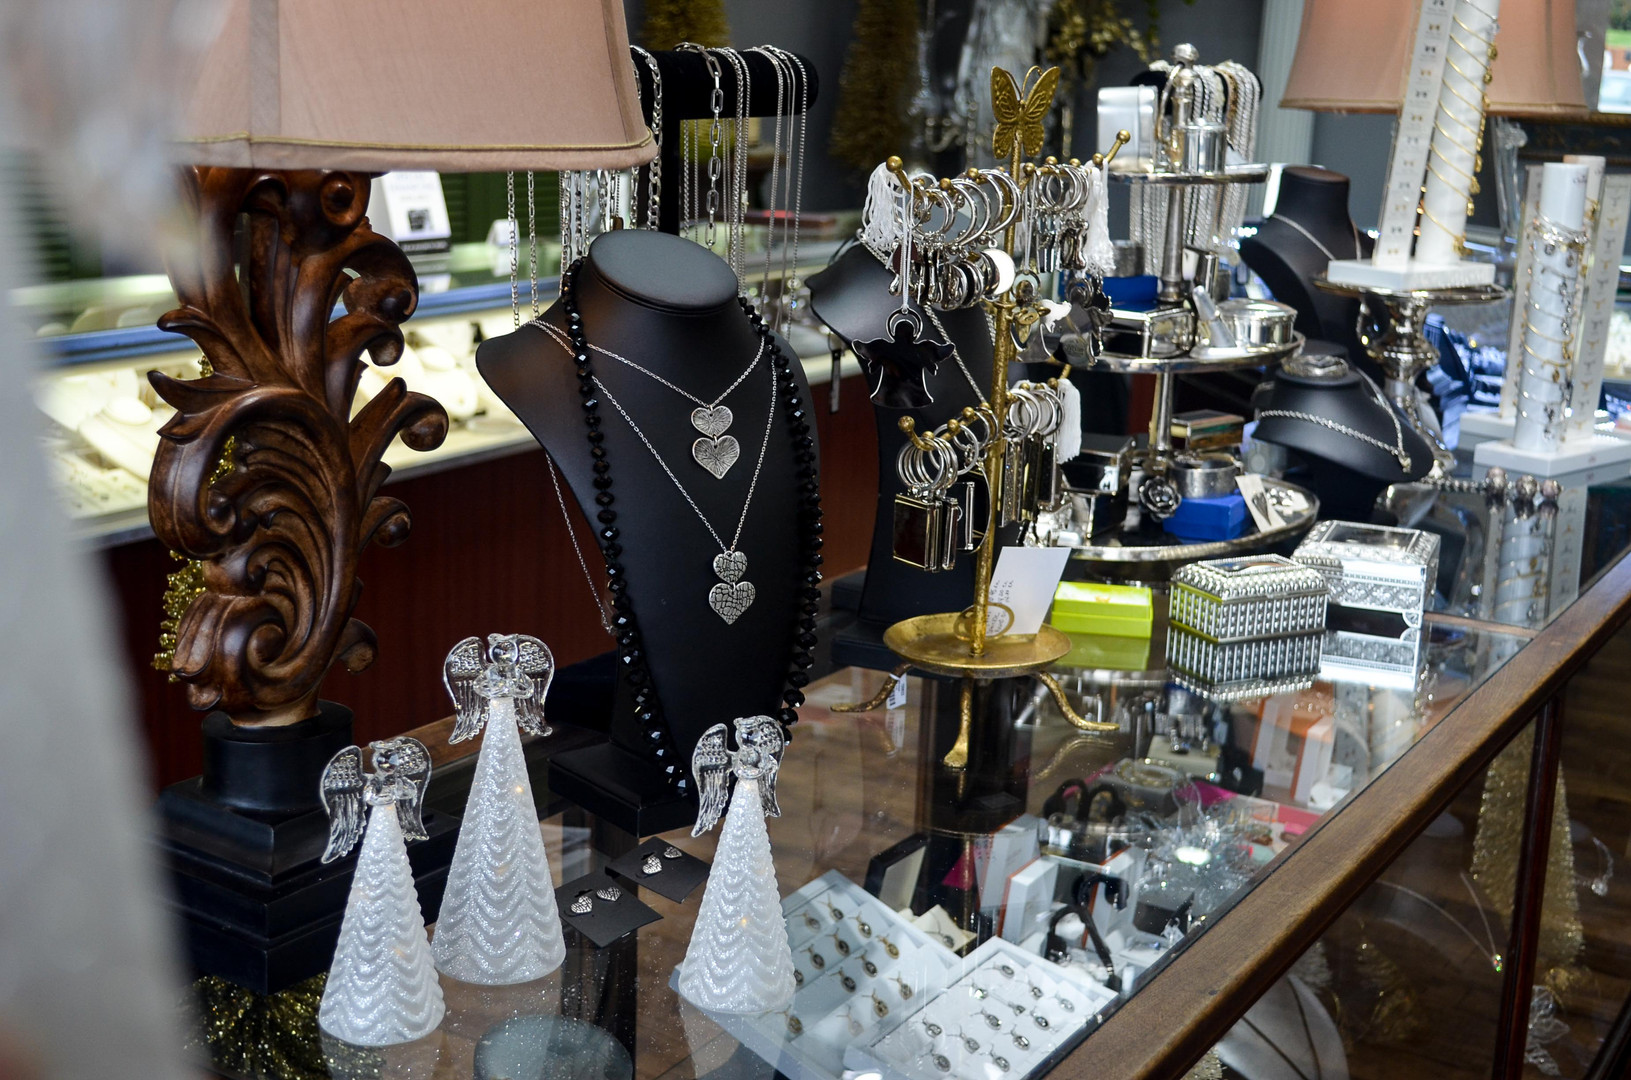 Ready for Holidays at Cook's Jewelry